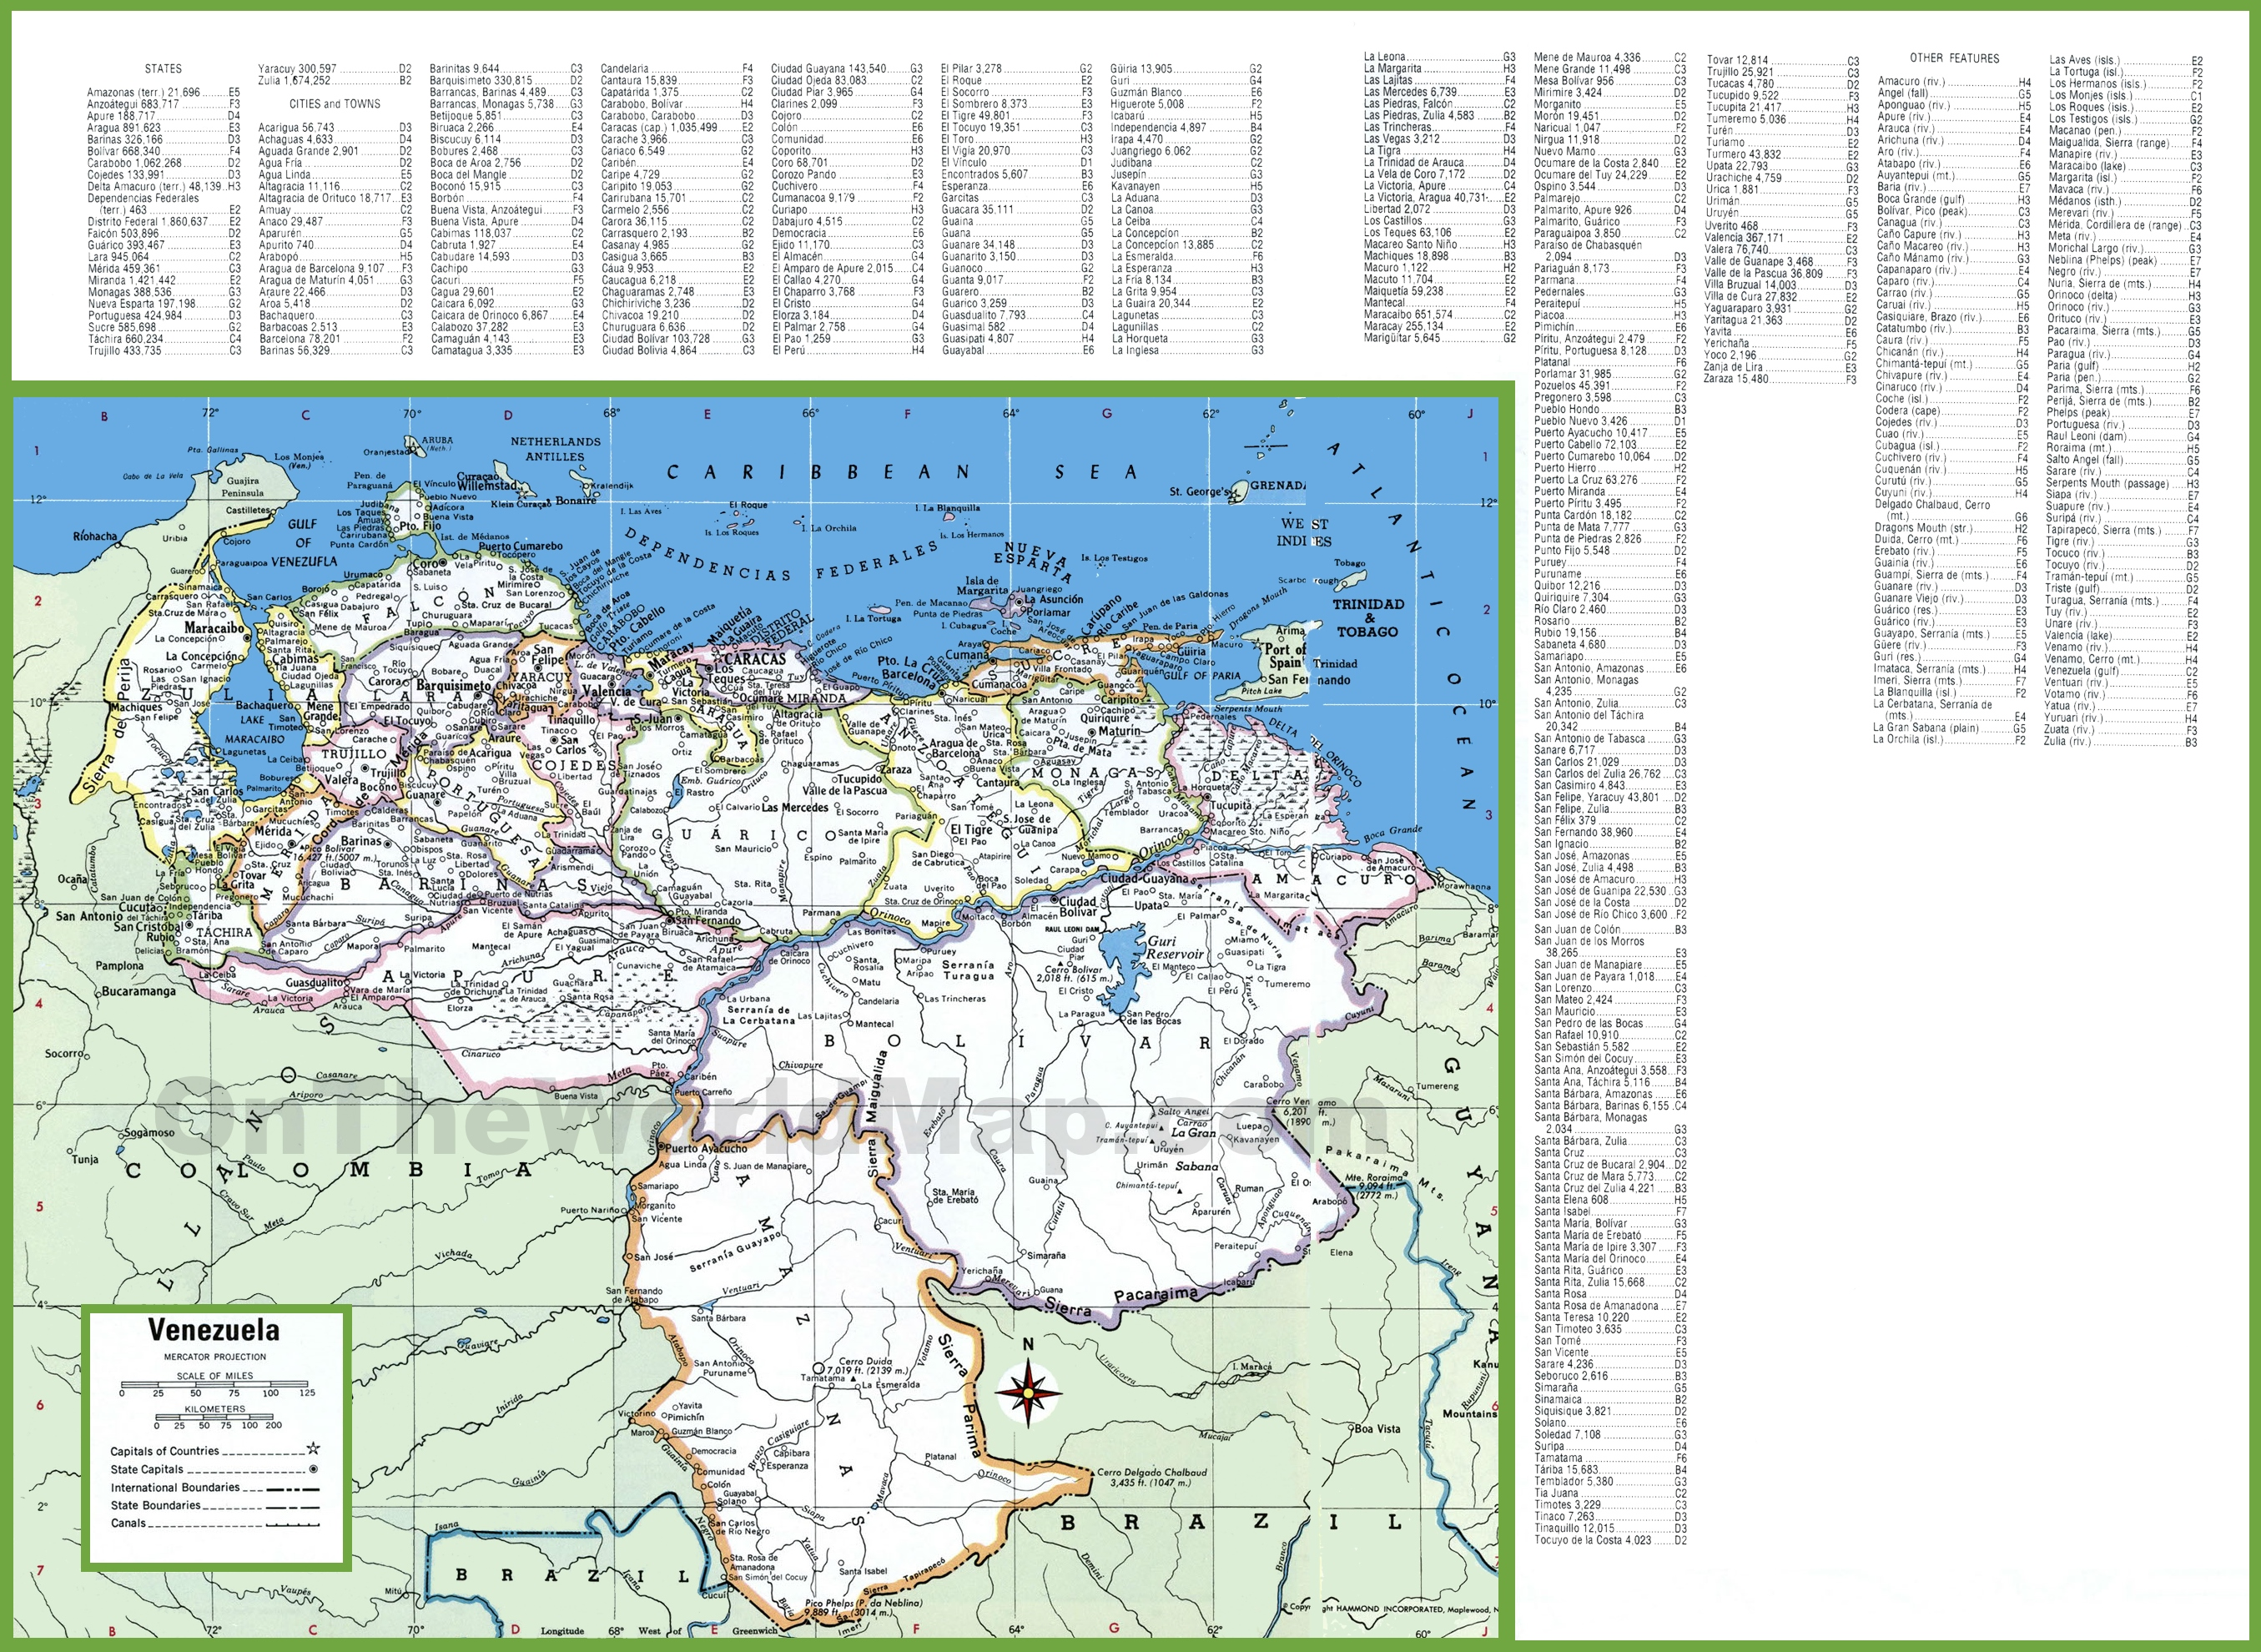 printable map of italy with cities and towns with Map Of Venezuela With Cities And Towns on 498037 further Sicily additionally Horsens Fjord Map together with Rail Map moreover SICILYHALLMARKS.